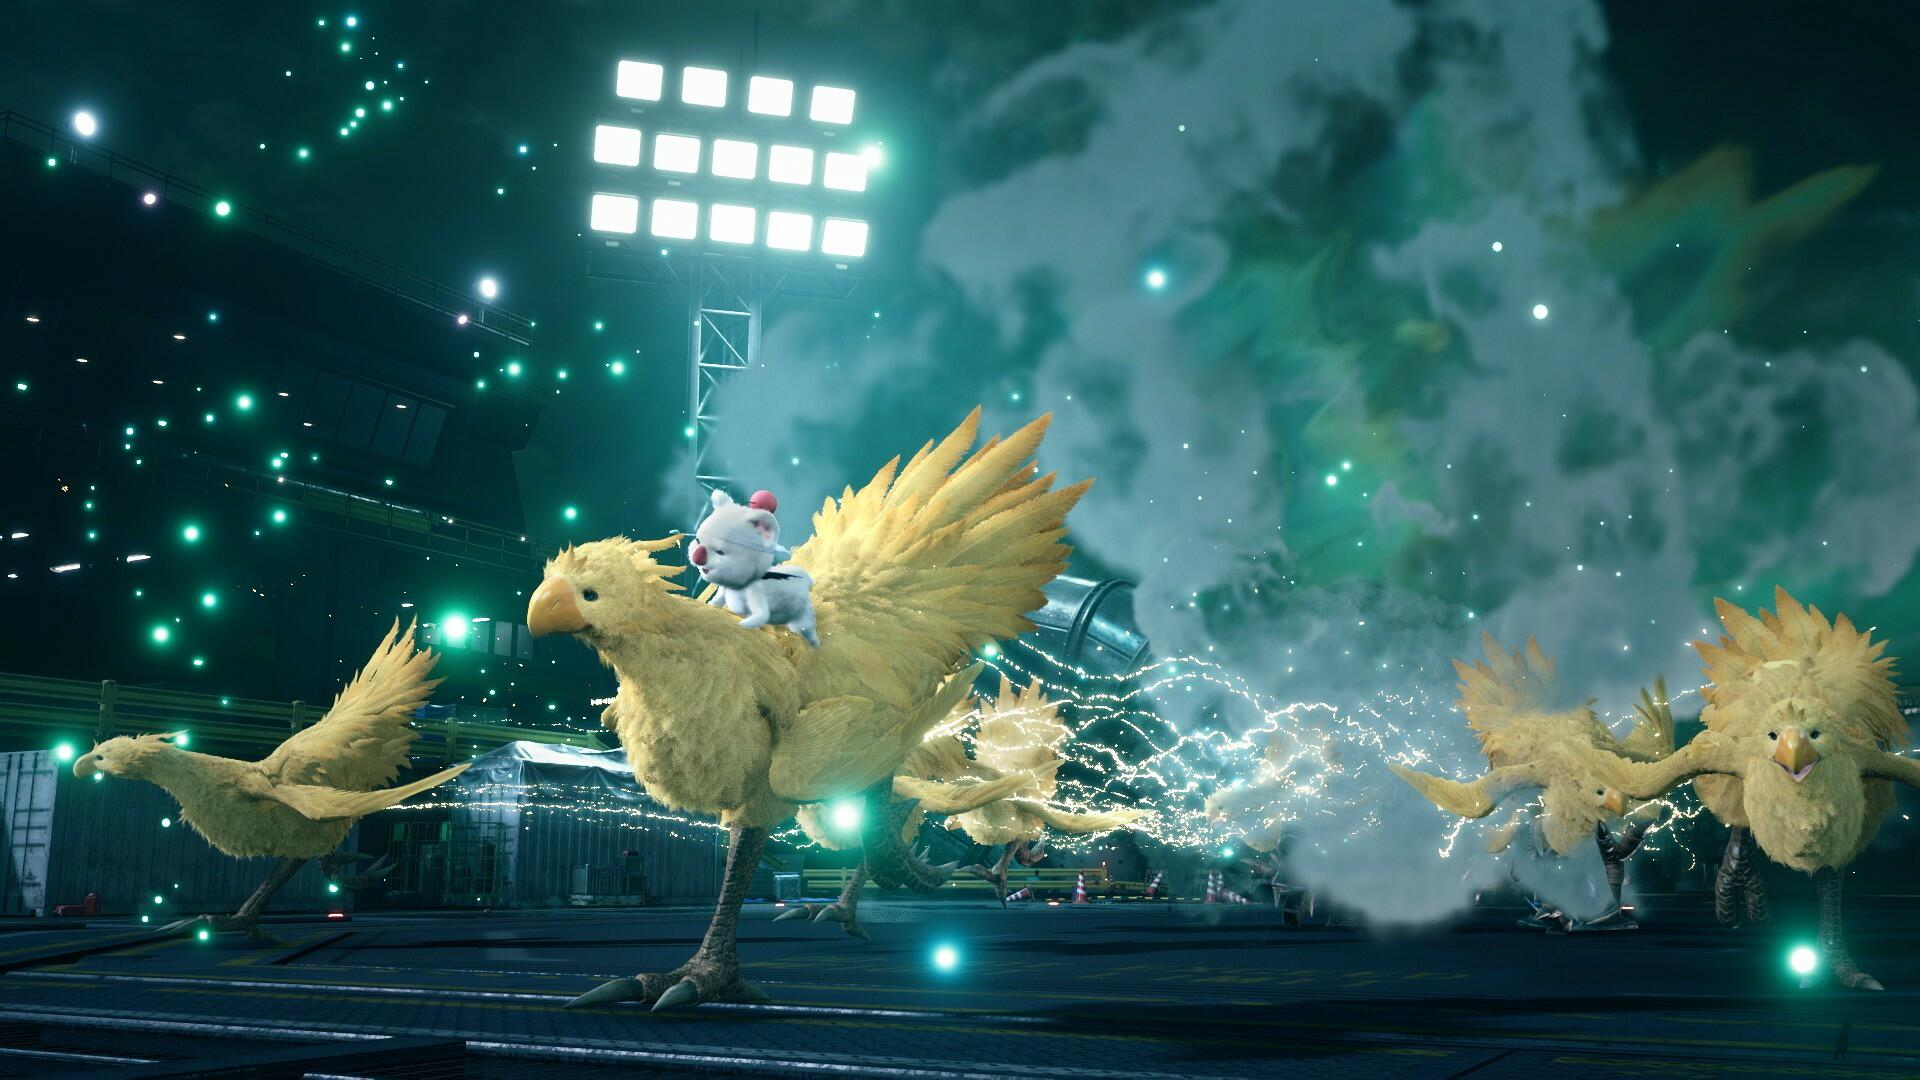 Final Fantasy 7 Remake's Chocobos are Clearly Capable of Murder